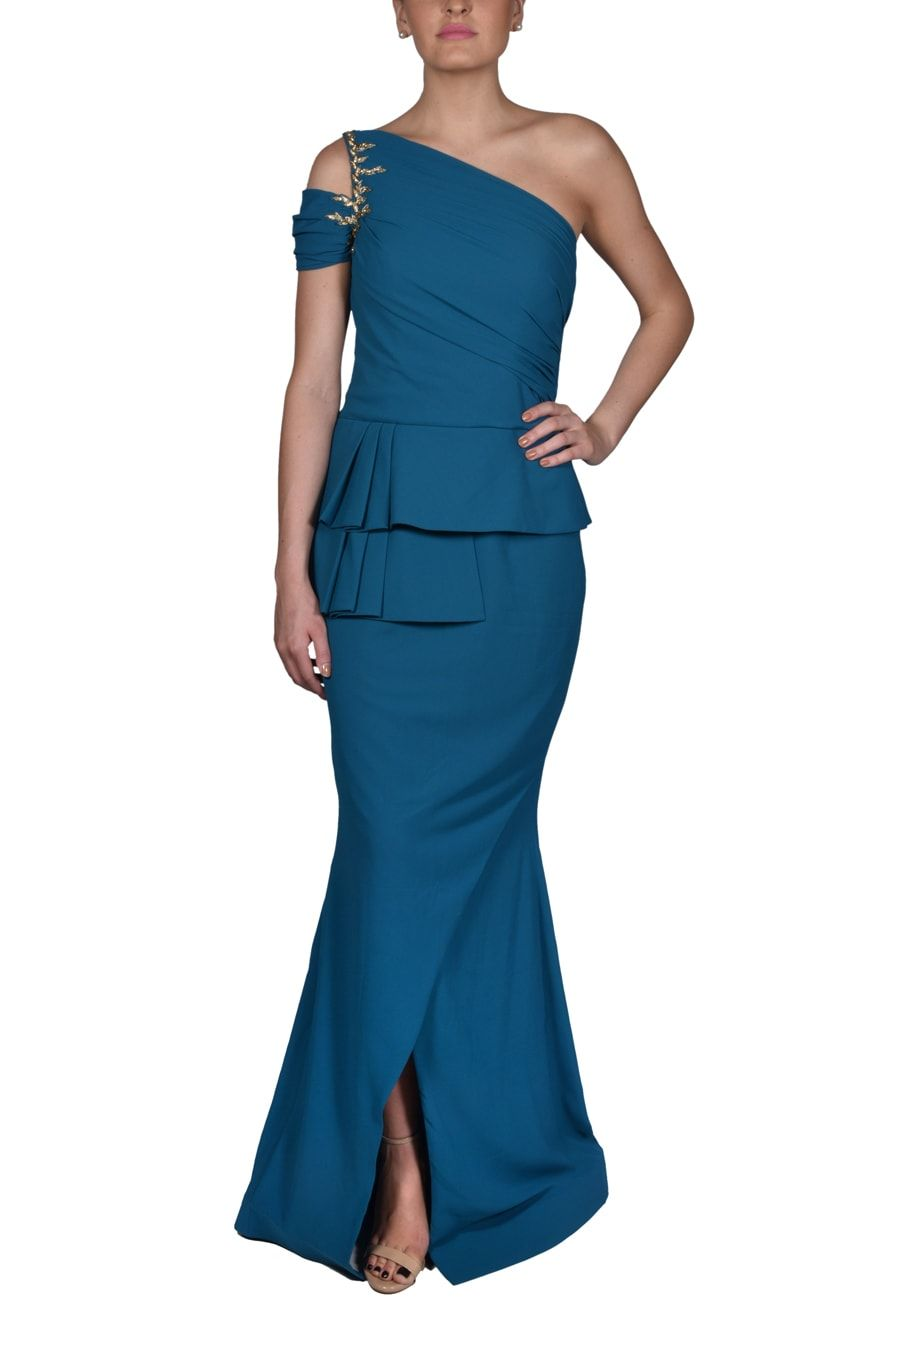 Look Stunning in this exquisite Blue Peplum Gown. Shop for Indian, Western, Indo-Western Fashion Designer Dresses and dress to kill for any occasion - Sangeet, Receptions, Weddings or Cocktails.